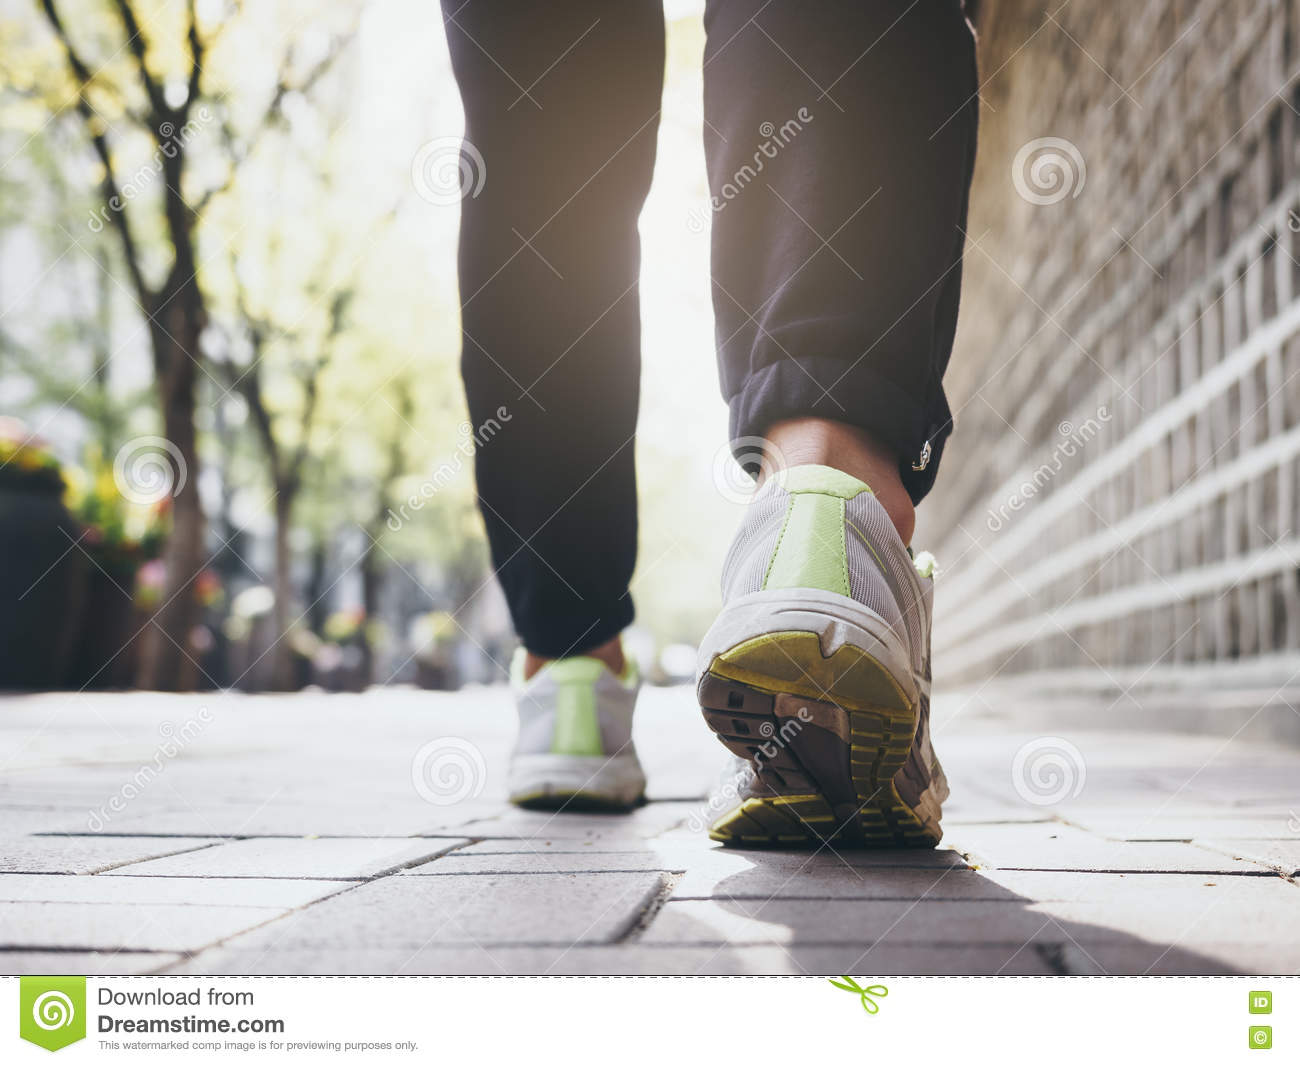 Woman Walking outdoor Jogging exercise Healthy lifestyle